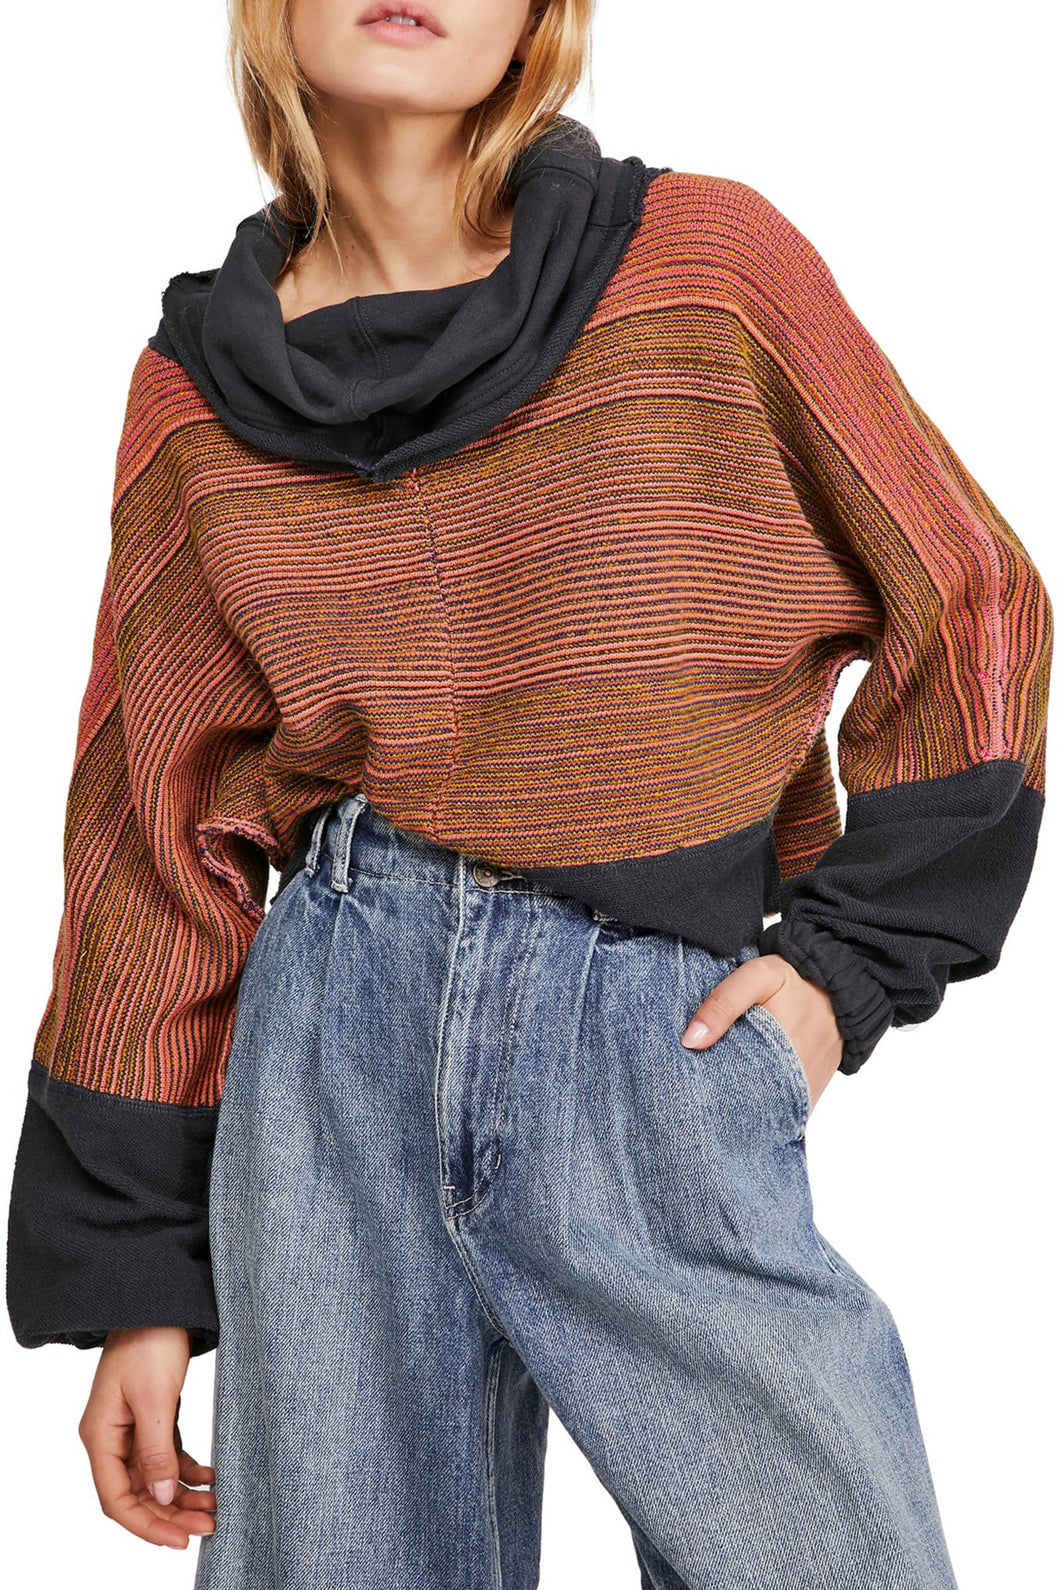 Free People CATCH A SMILE PULLOVER SWEATER